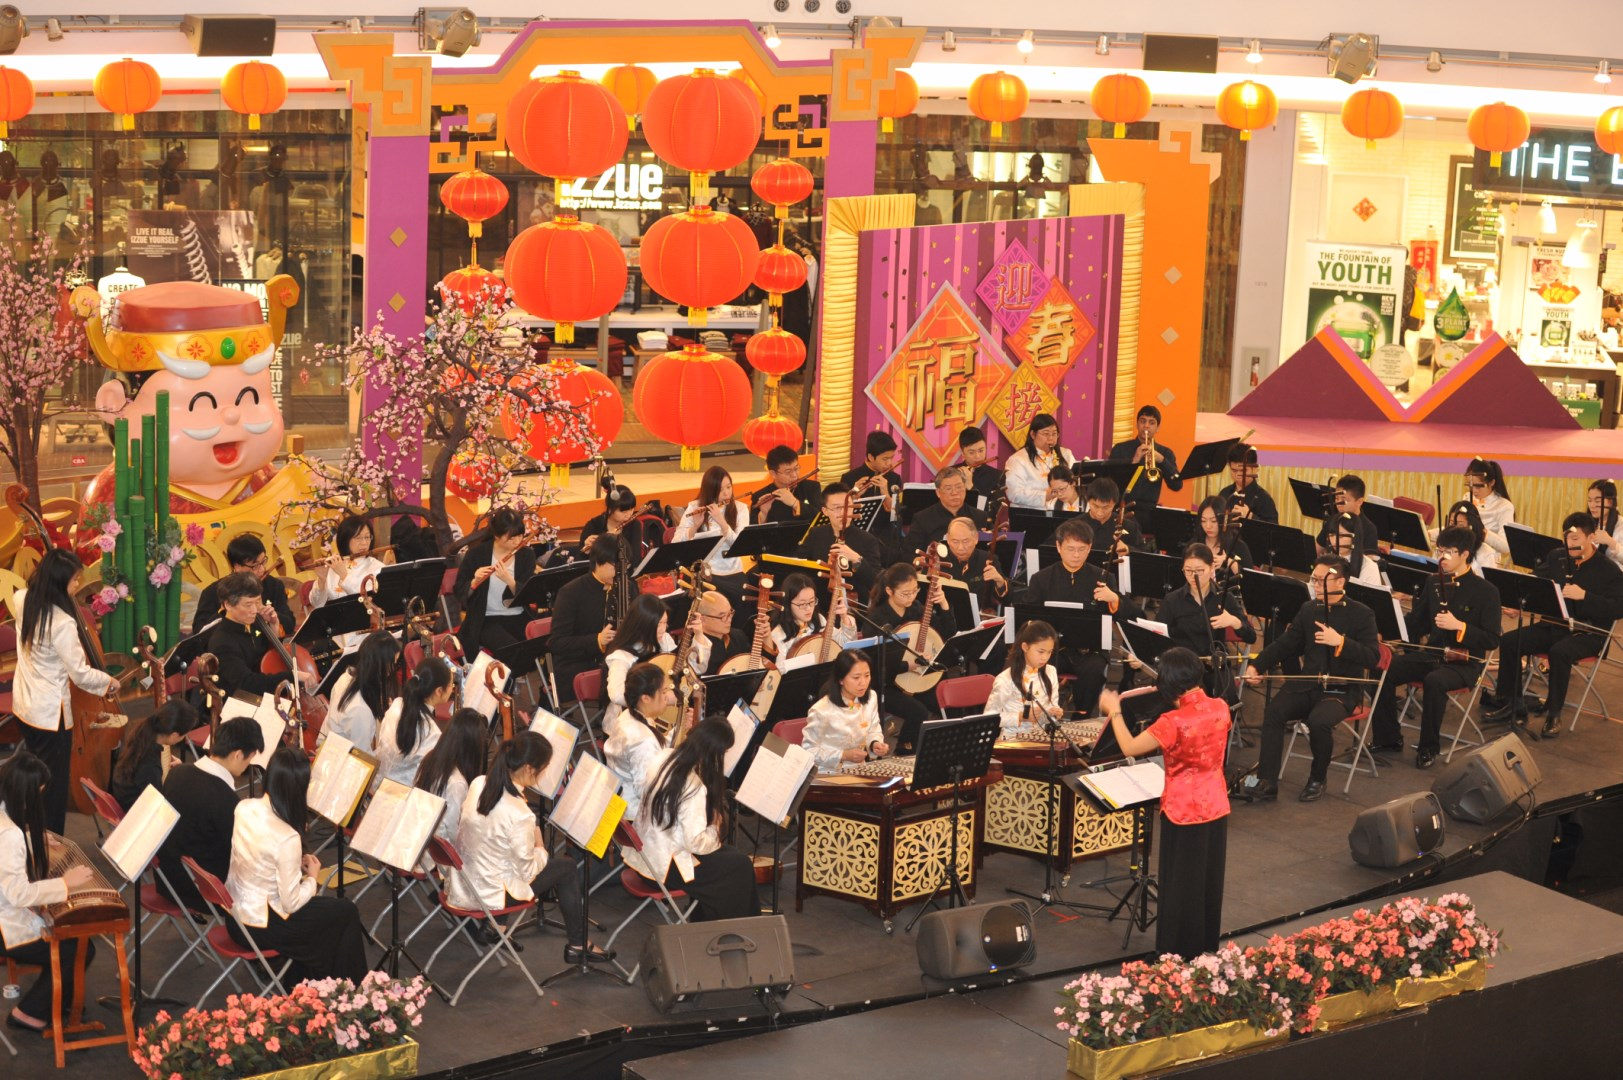 Thank for asian orchestra youth brilliant idea